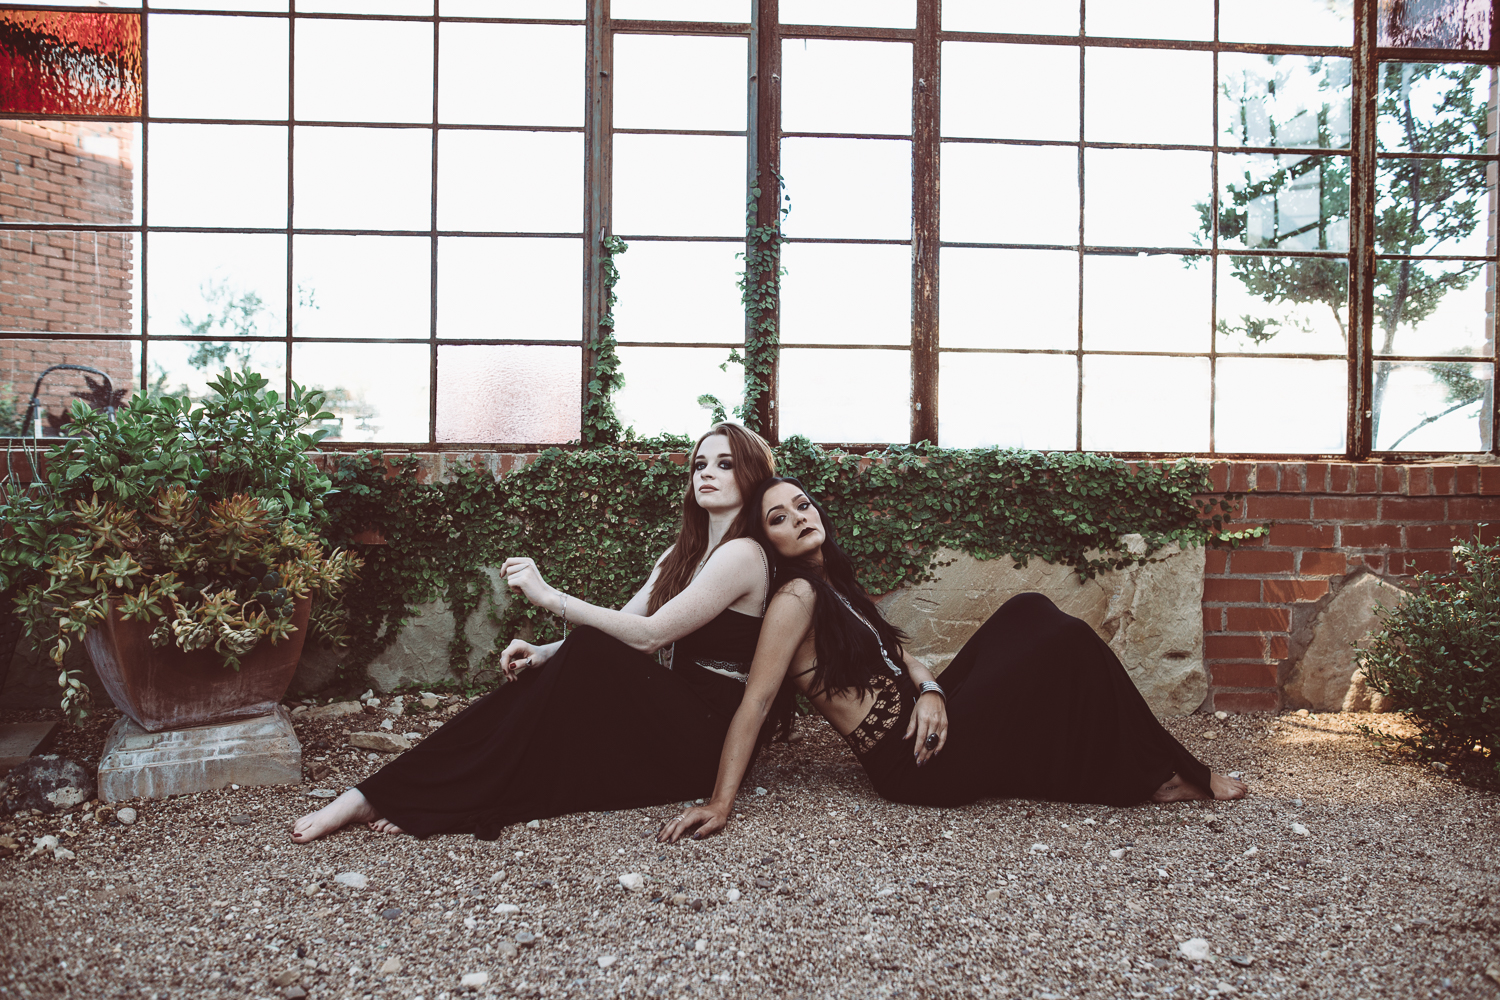 laura-beck-photography-best-lubbock-texas-couples-love-lifestyle-engagement-wedding-anniversary-portraits-50.jpg